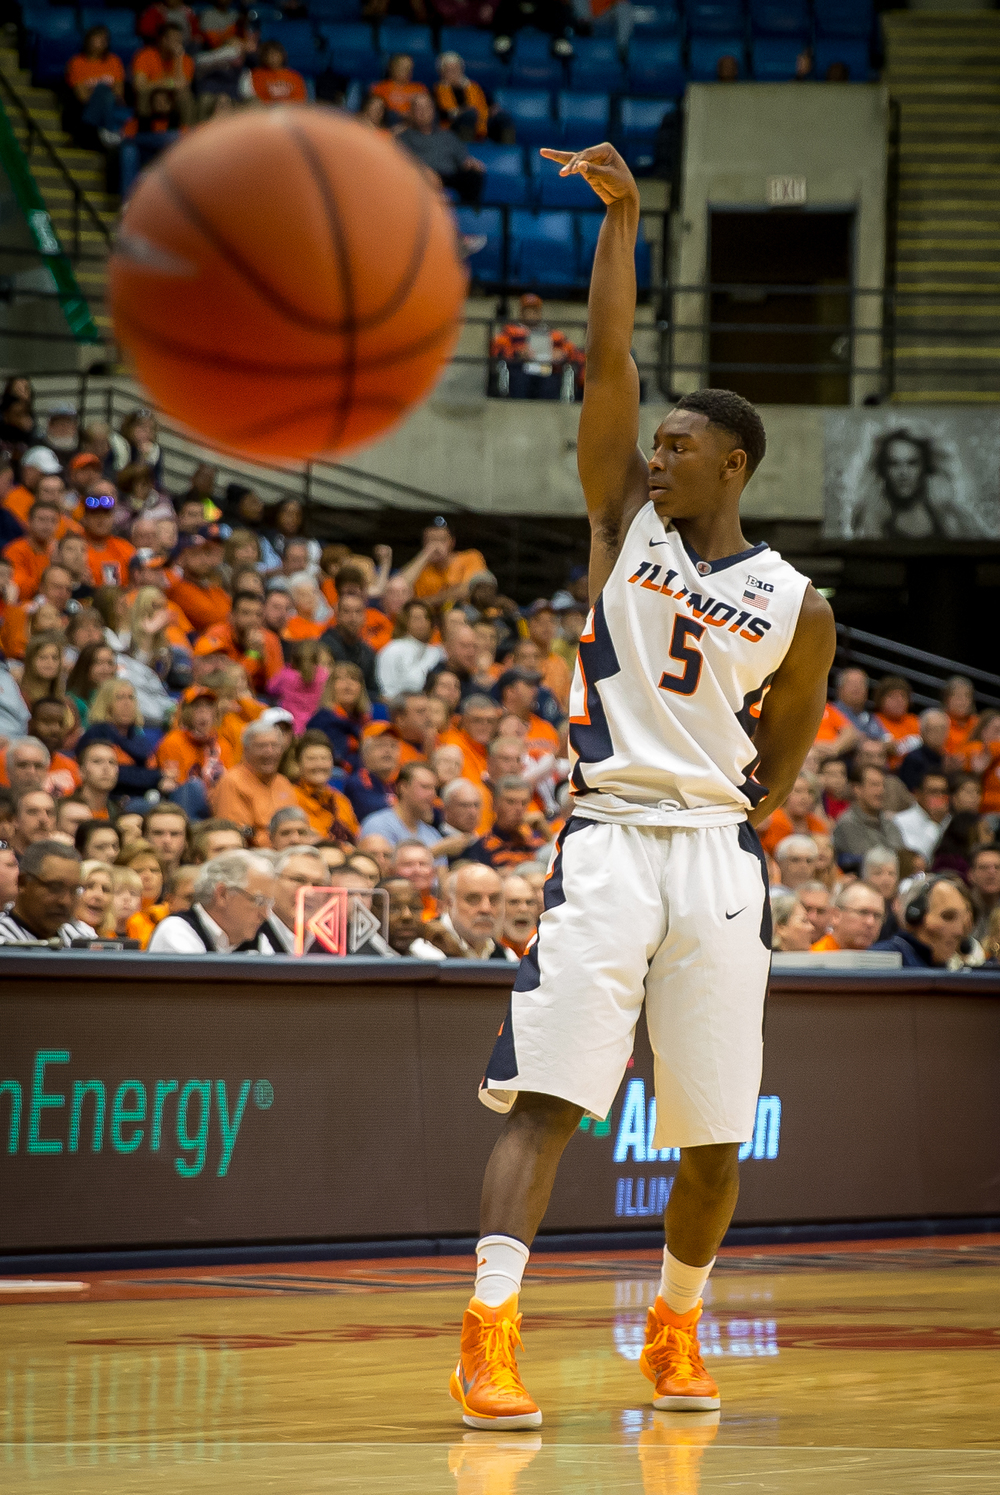 University of Illinois' Jalen Coleman-Lands (5) reacts after dropping a three against the University of Illinois Springfield in the second half during an exhibition game at the Prairie Capital Convention Center, Sunday, Nov. 8, 2015, in Springfield, Ill. Justin L. Fowler/The State Journal-Register